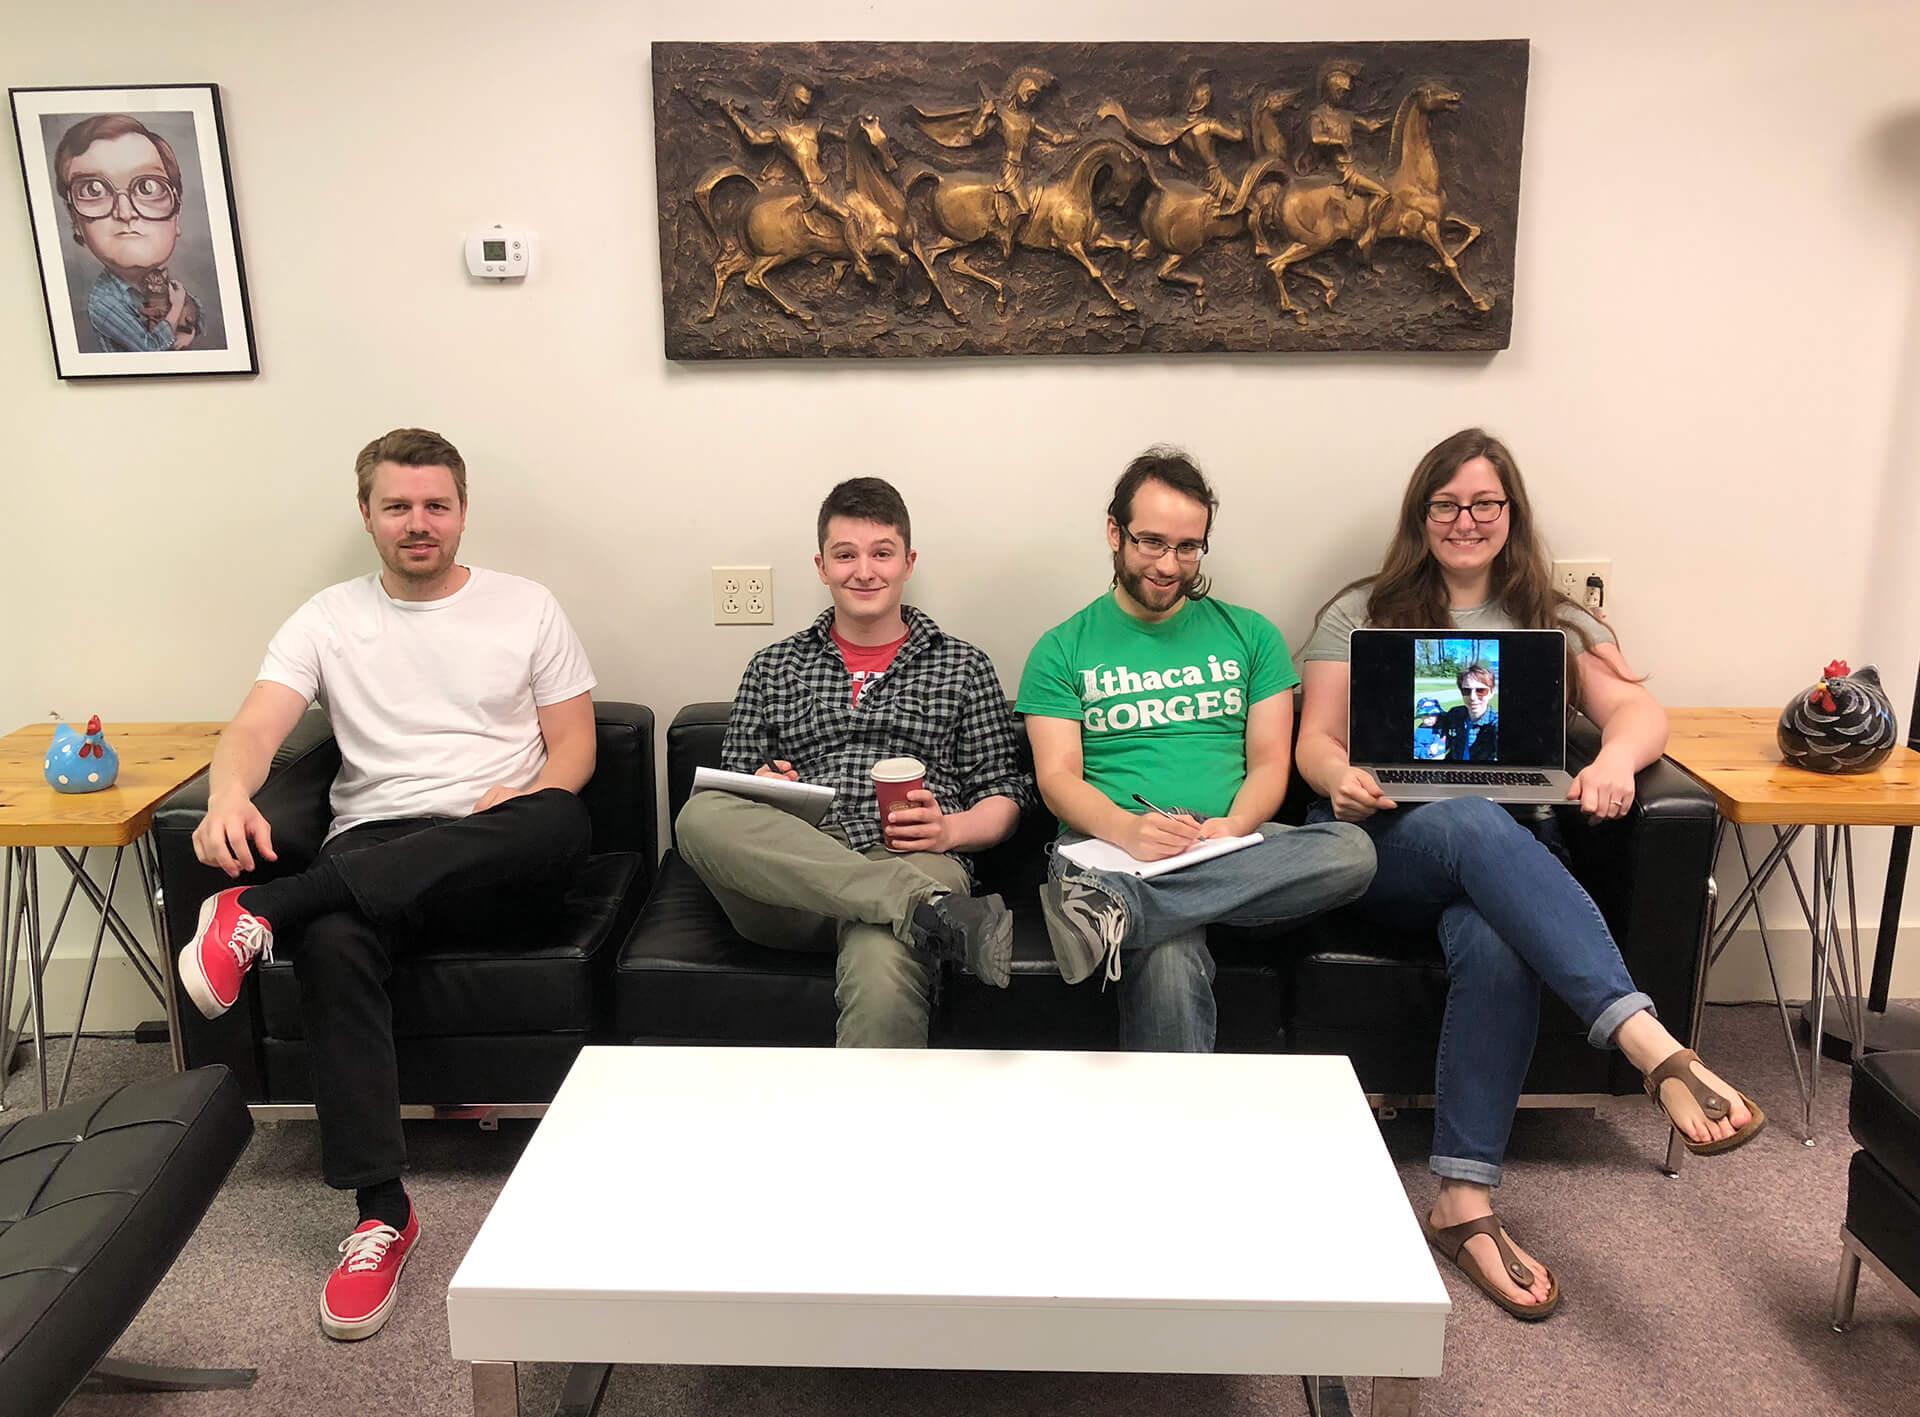 Bytes support team members sitting on a couch